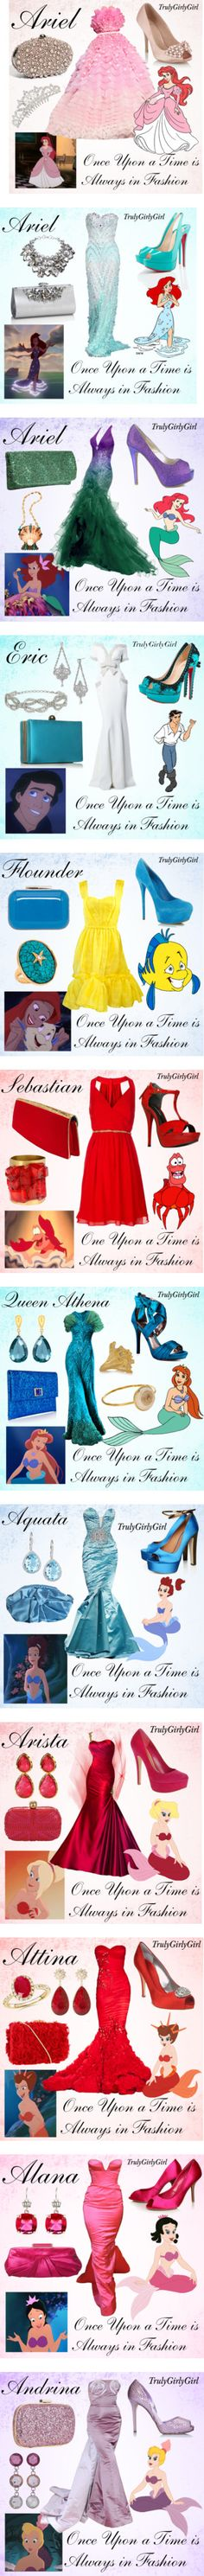 """Disney Style: The Little Mermaid"" by trulygirlygirl. My favorite is the Queen Athena outfit. Disney Outfits, Disney Inspired Outfits, Themed Outfits, Disney Dresses, Disney Style, Cute Outfits, Prom Dresses, Disney Clothes, Walt Disney"